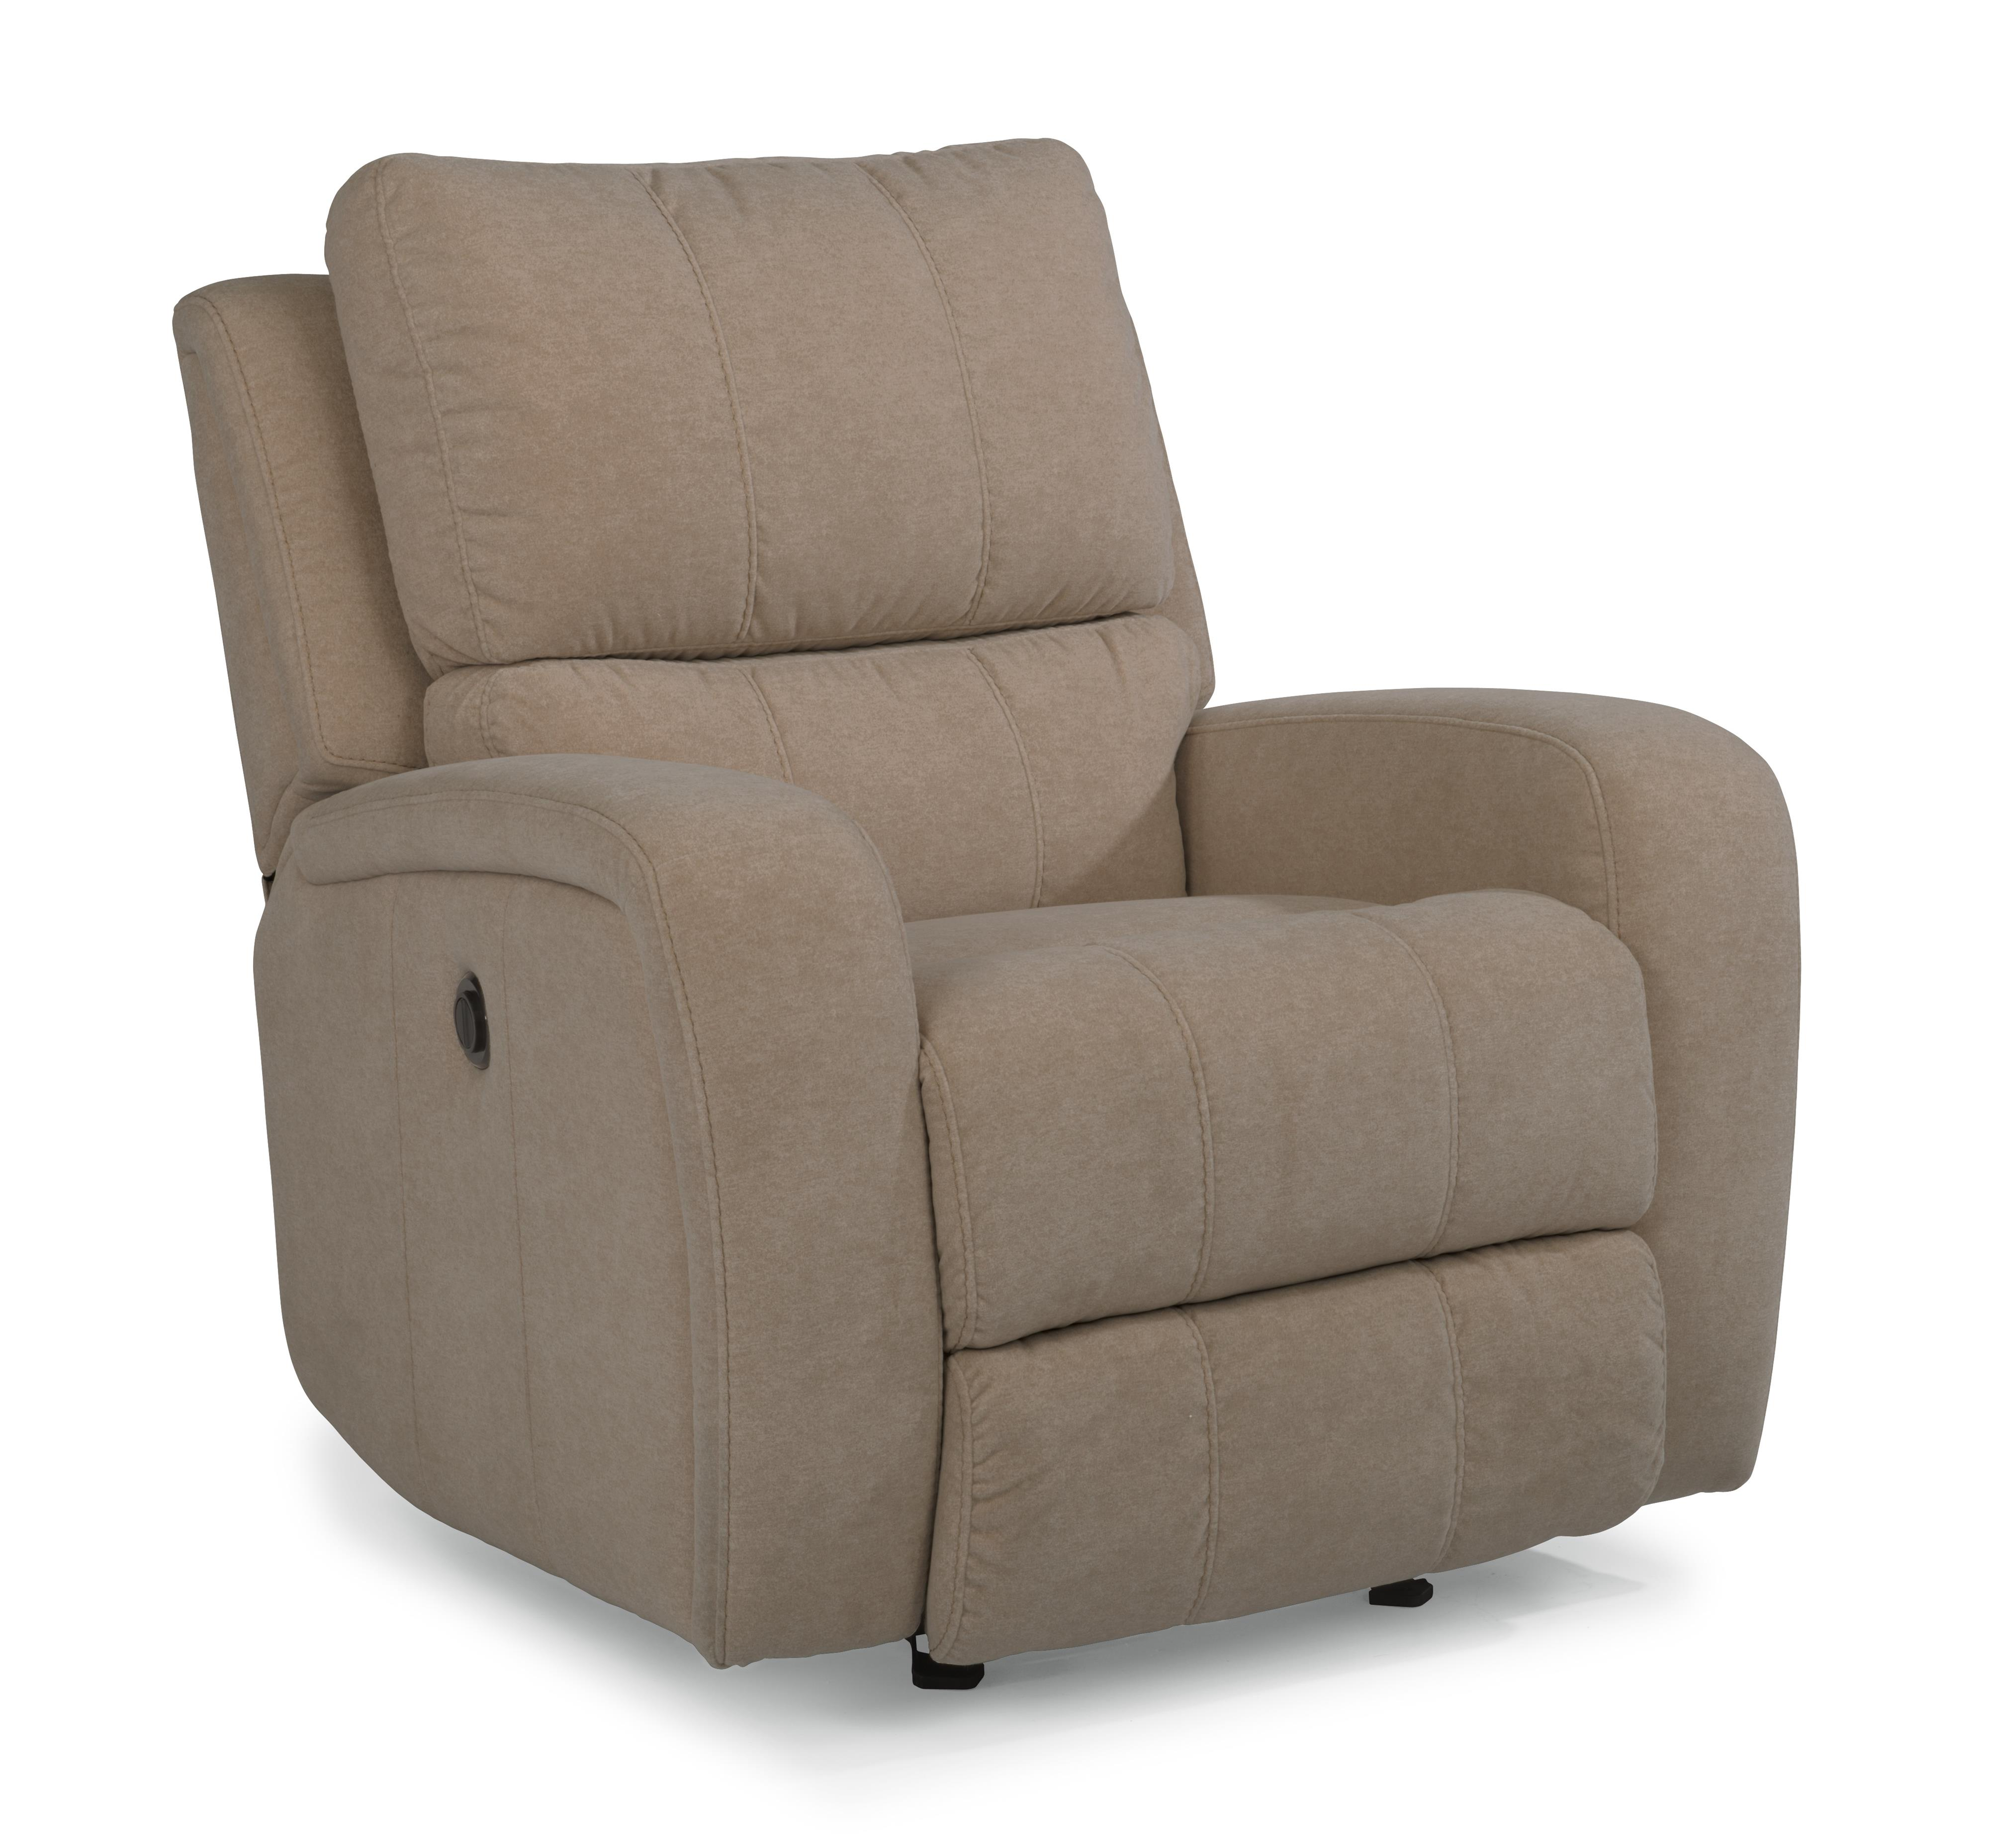 Flexsteel Latitudes-Hammond Glider Recliner with power - Item Number: 1156-54P-023-01